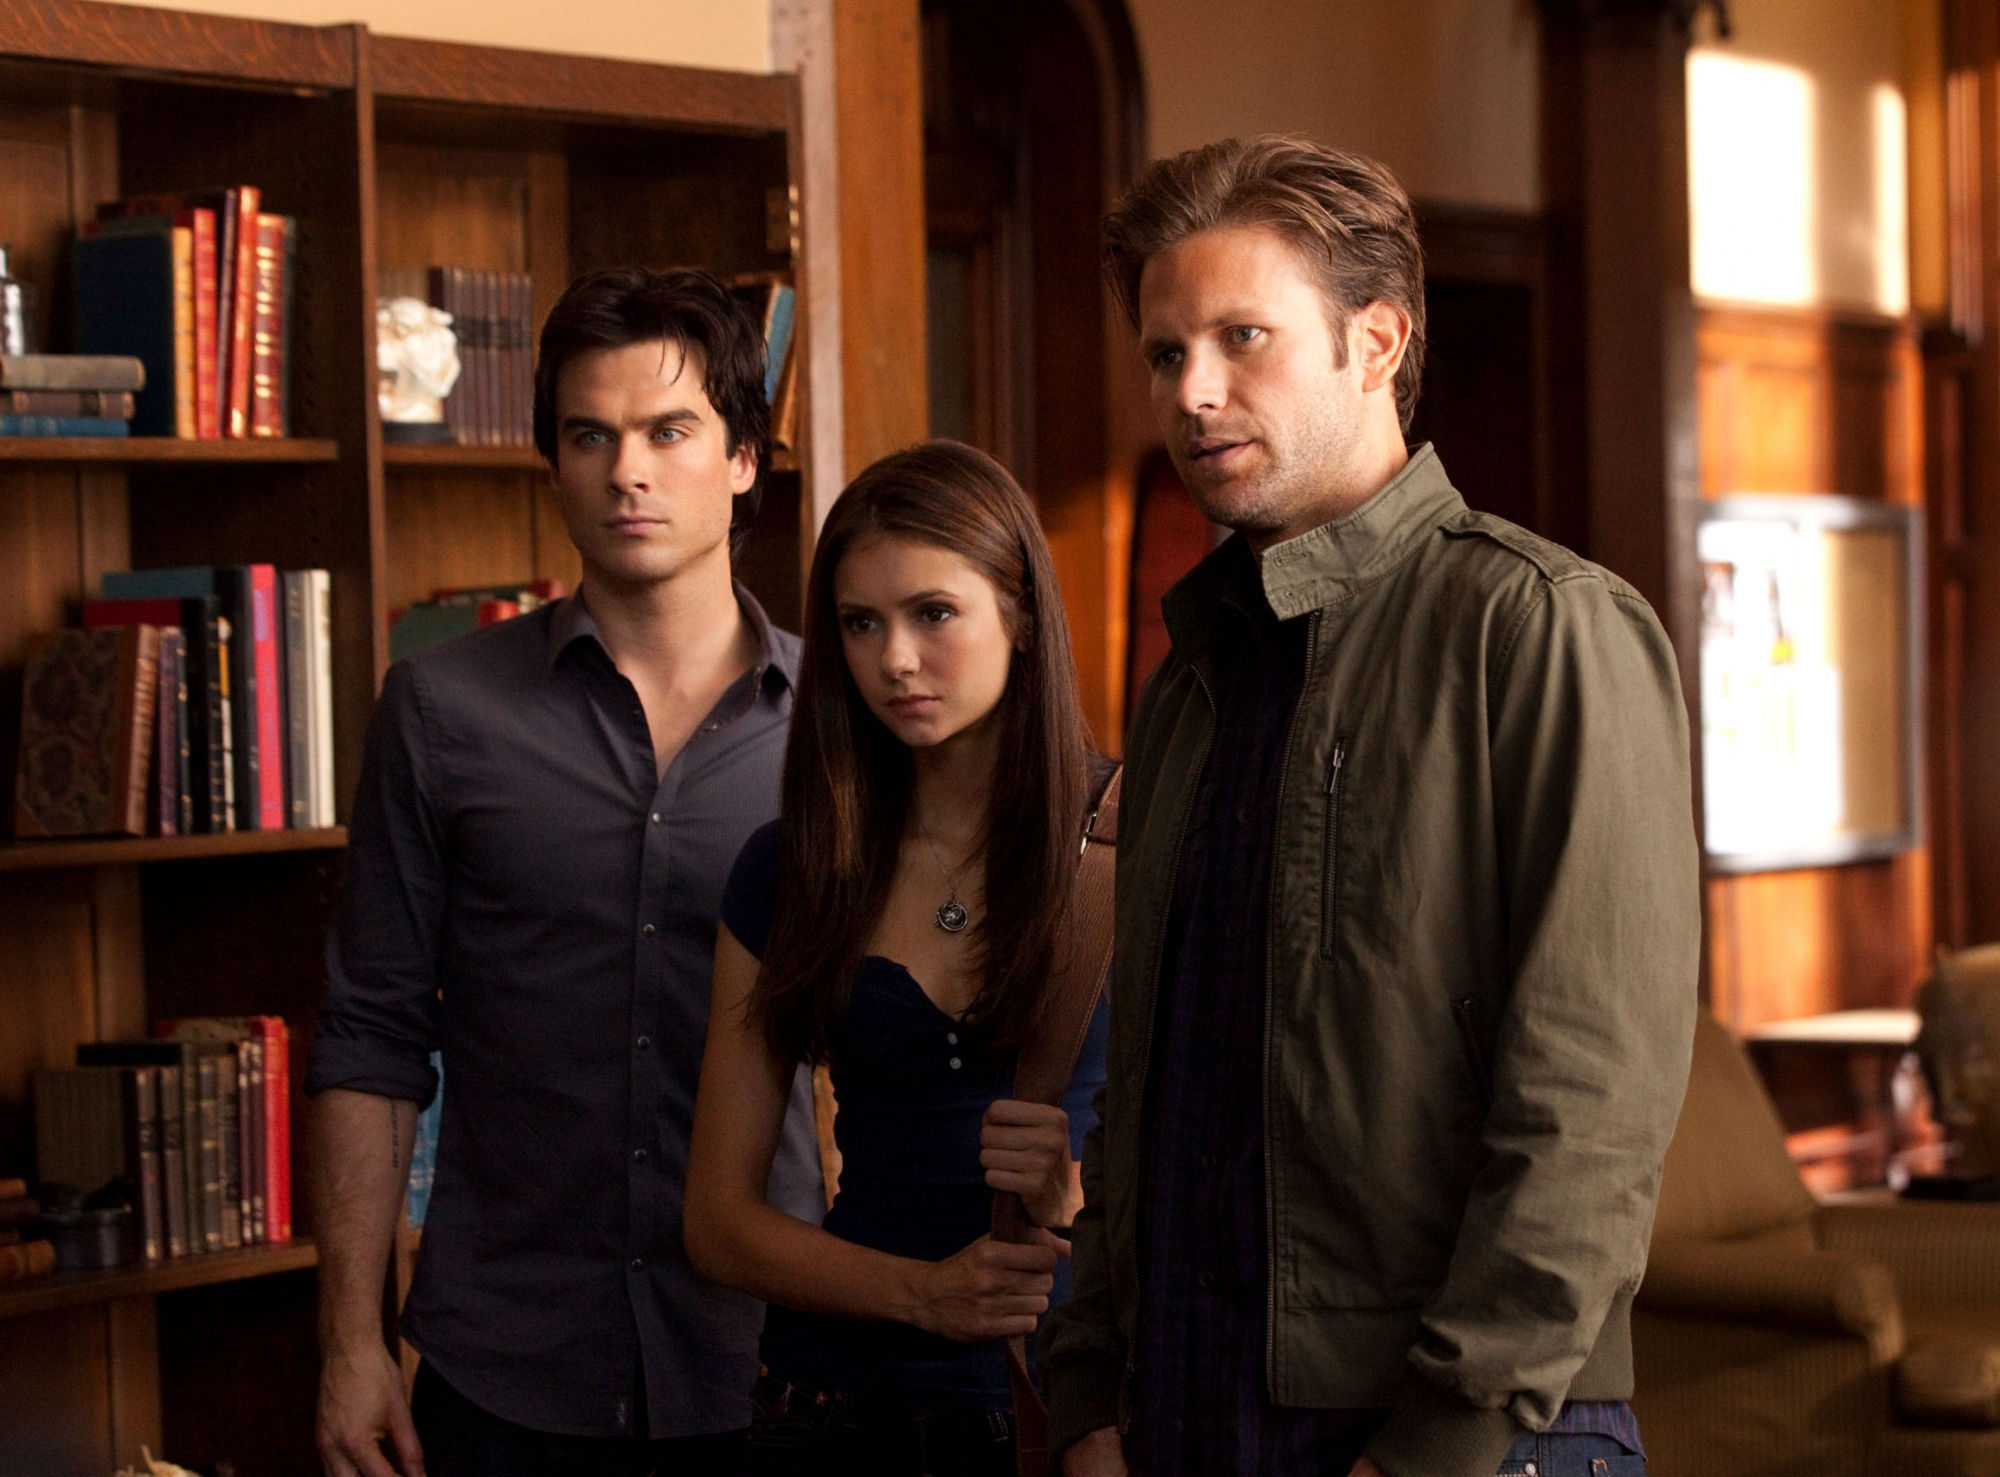 http://images4.fanpop.com/image/photos/15300000/Bad-Moon-Rising-2x03-the-vampire-diaries-tv-show-15391324-2000-1477.jpg